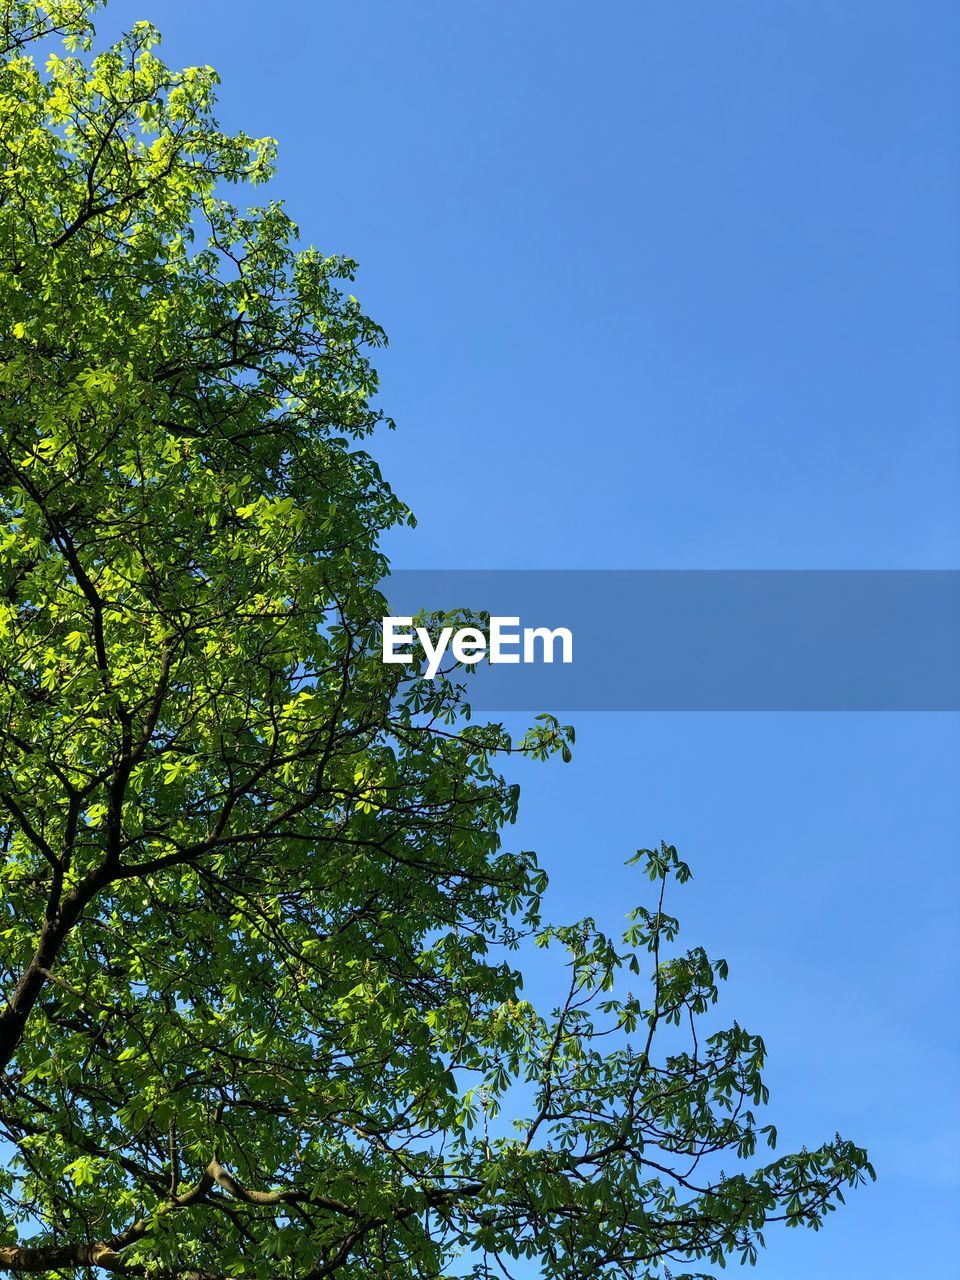 tree, sky, low angle view, plant, growth, beauty in nature, nature, blue, green color, no people, clear sky, day, tranquility, branch, outdoors, sunlight, leaf, plant part, idyllic, green, leaves, spring, tree canopy